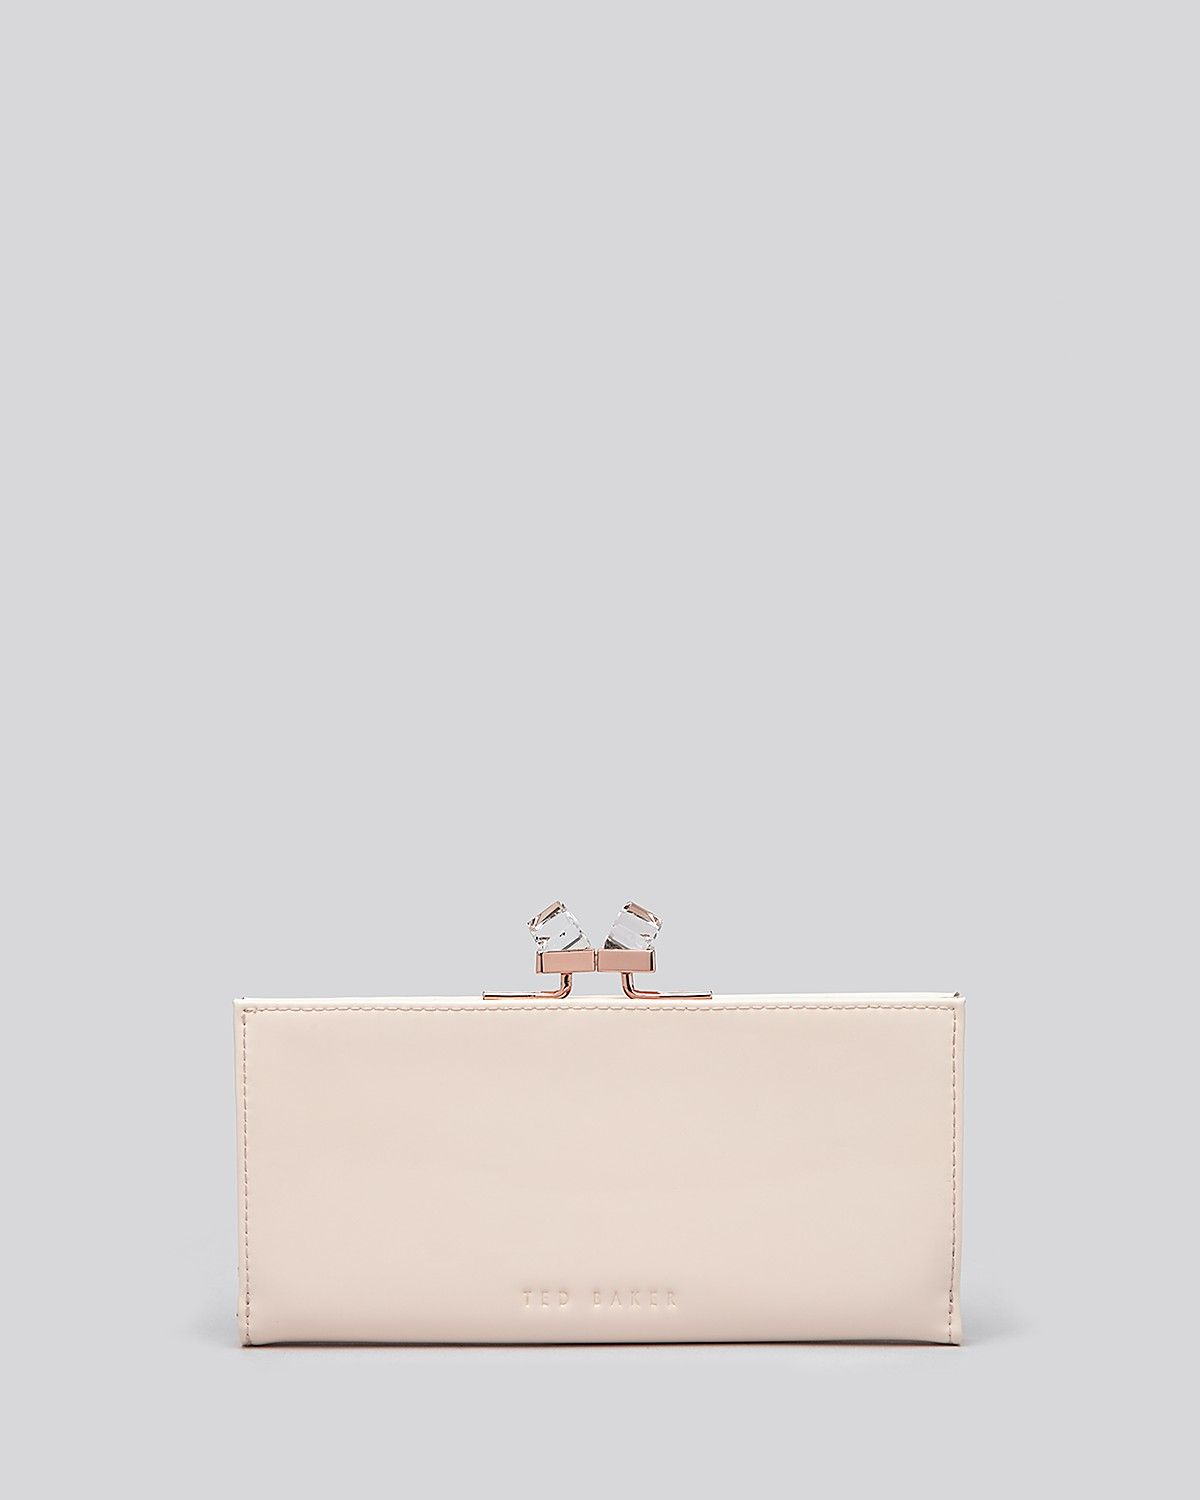 dc6684a4b9b9 Ted Baker Wallet - Patent Crystal Frame Matinee Continental ...